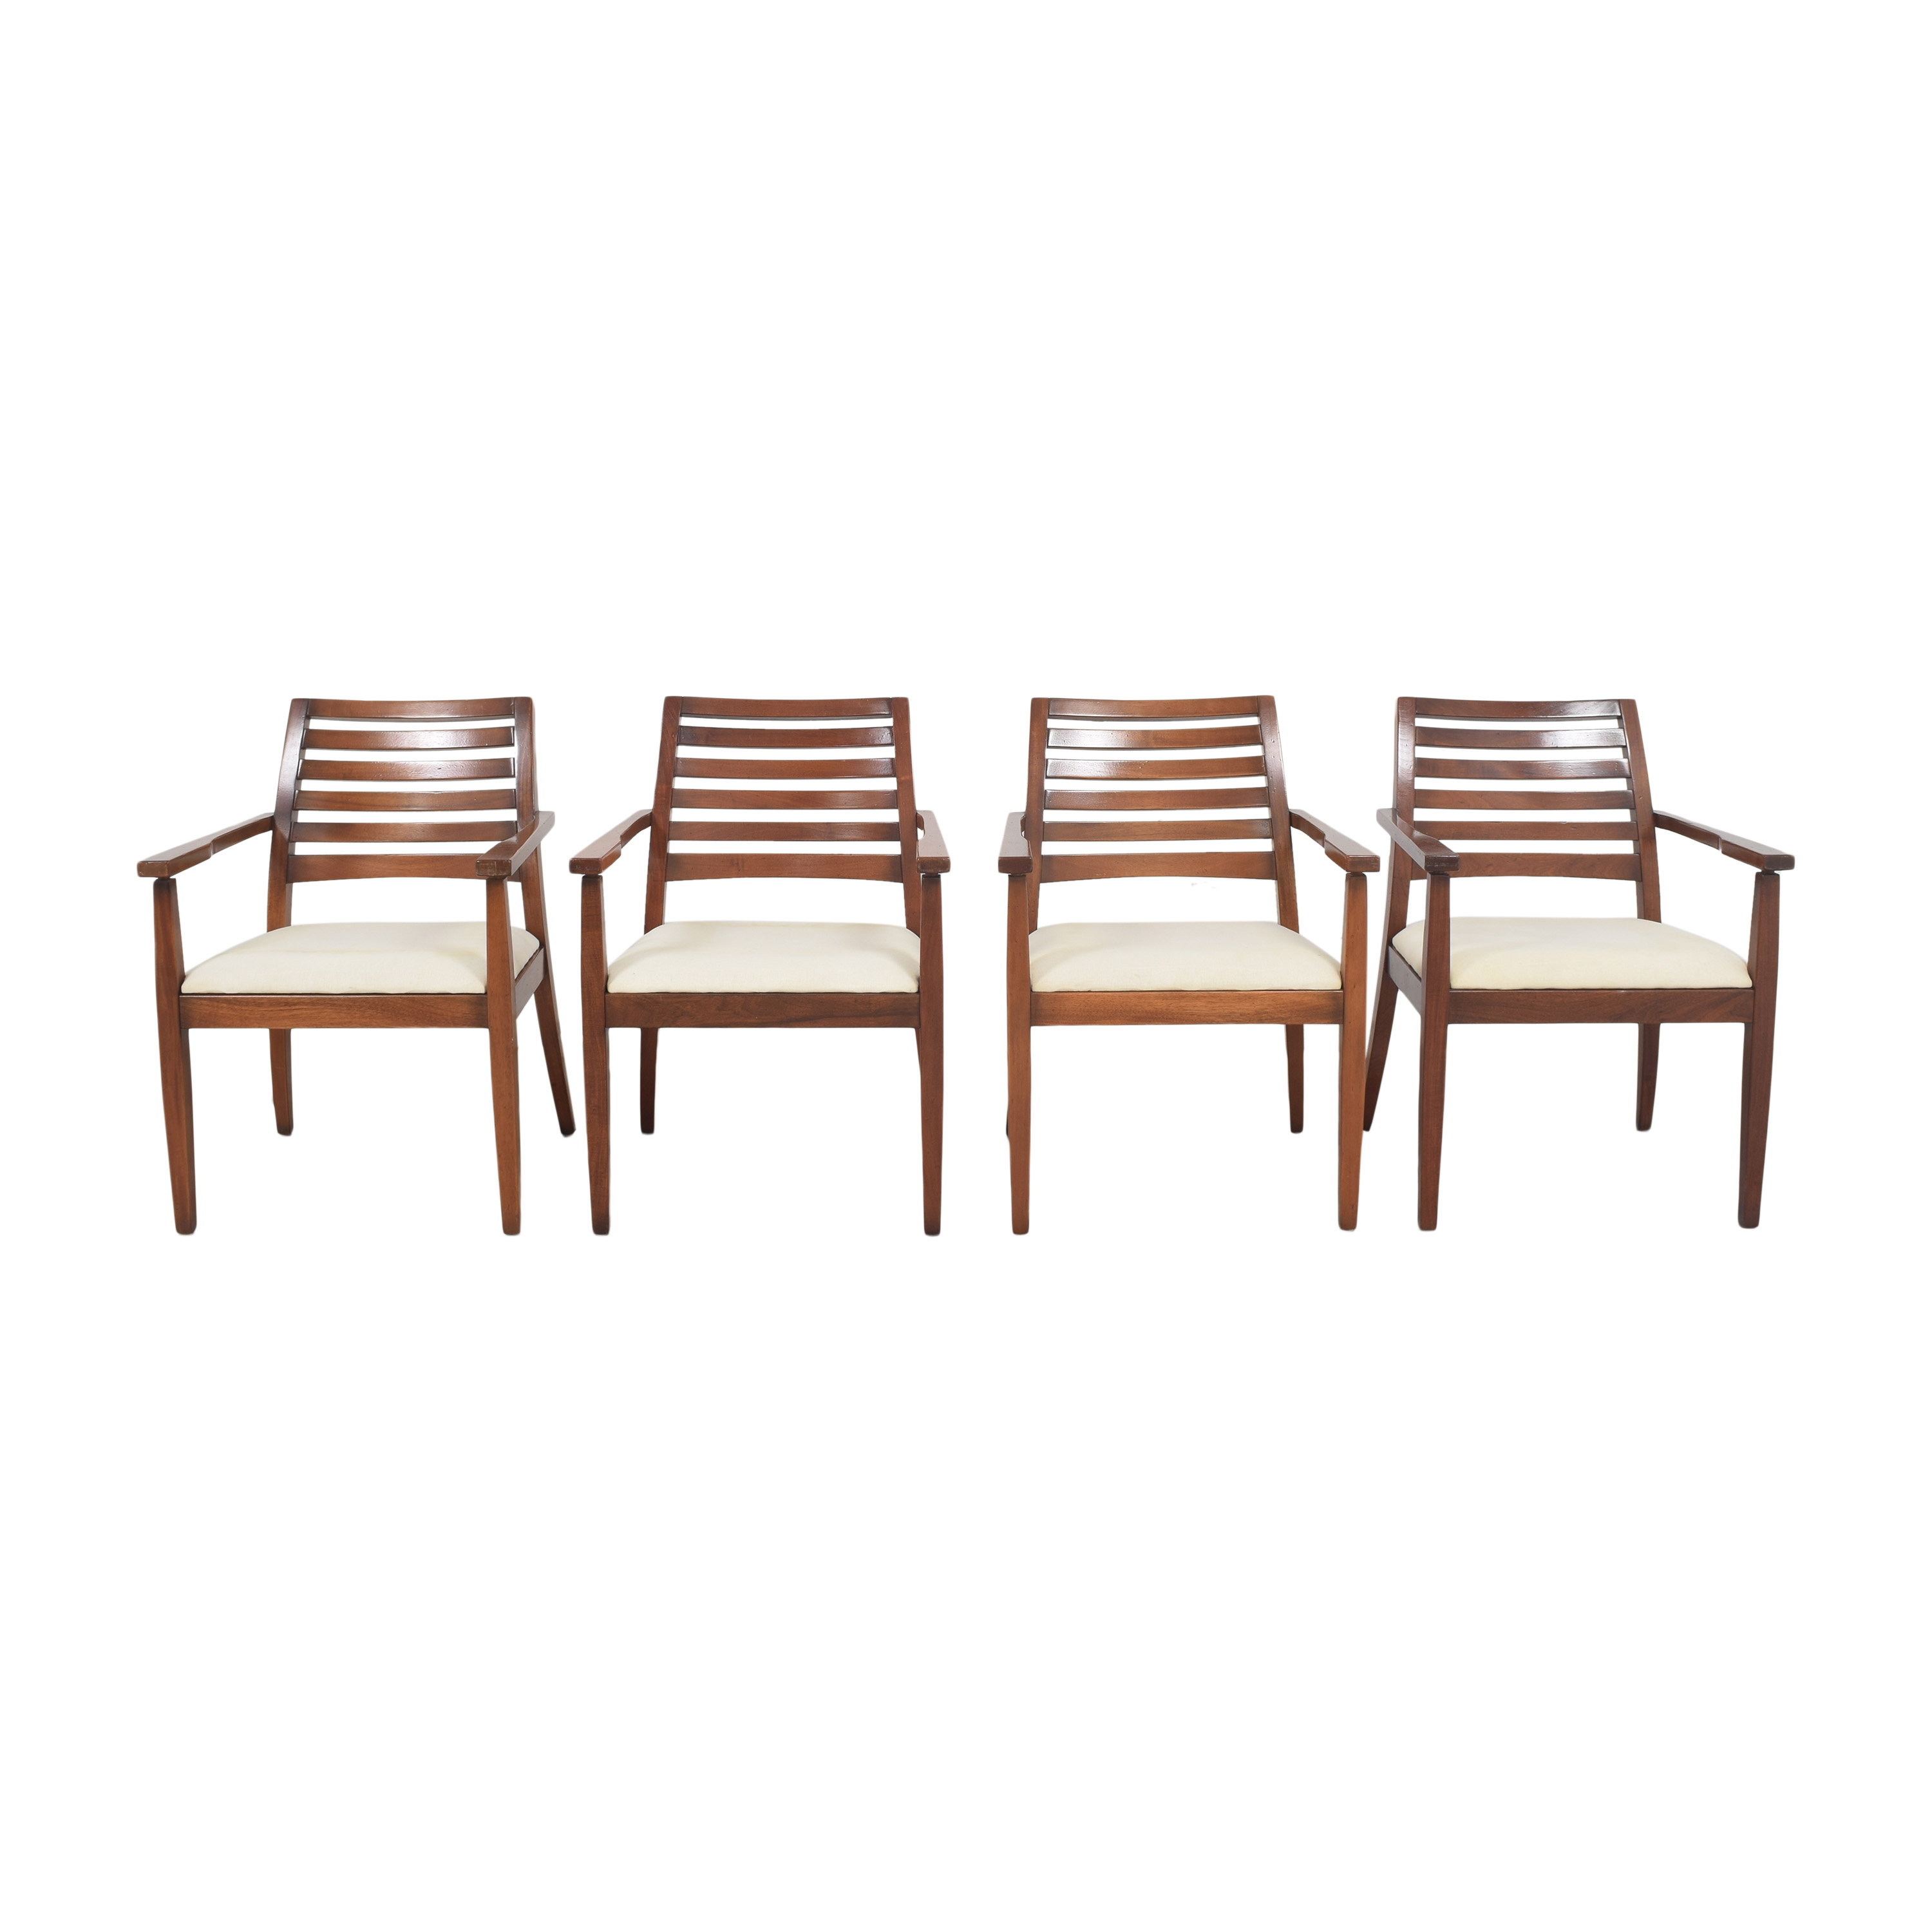 South Cone Furniture Stripe Dining Chairs / Chairs